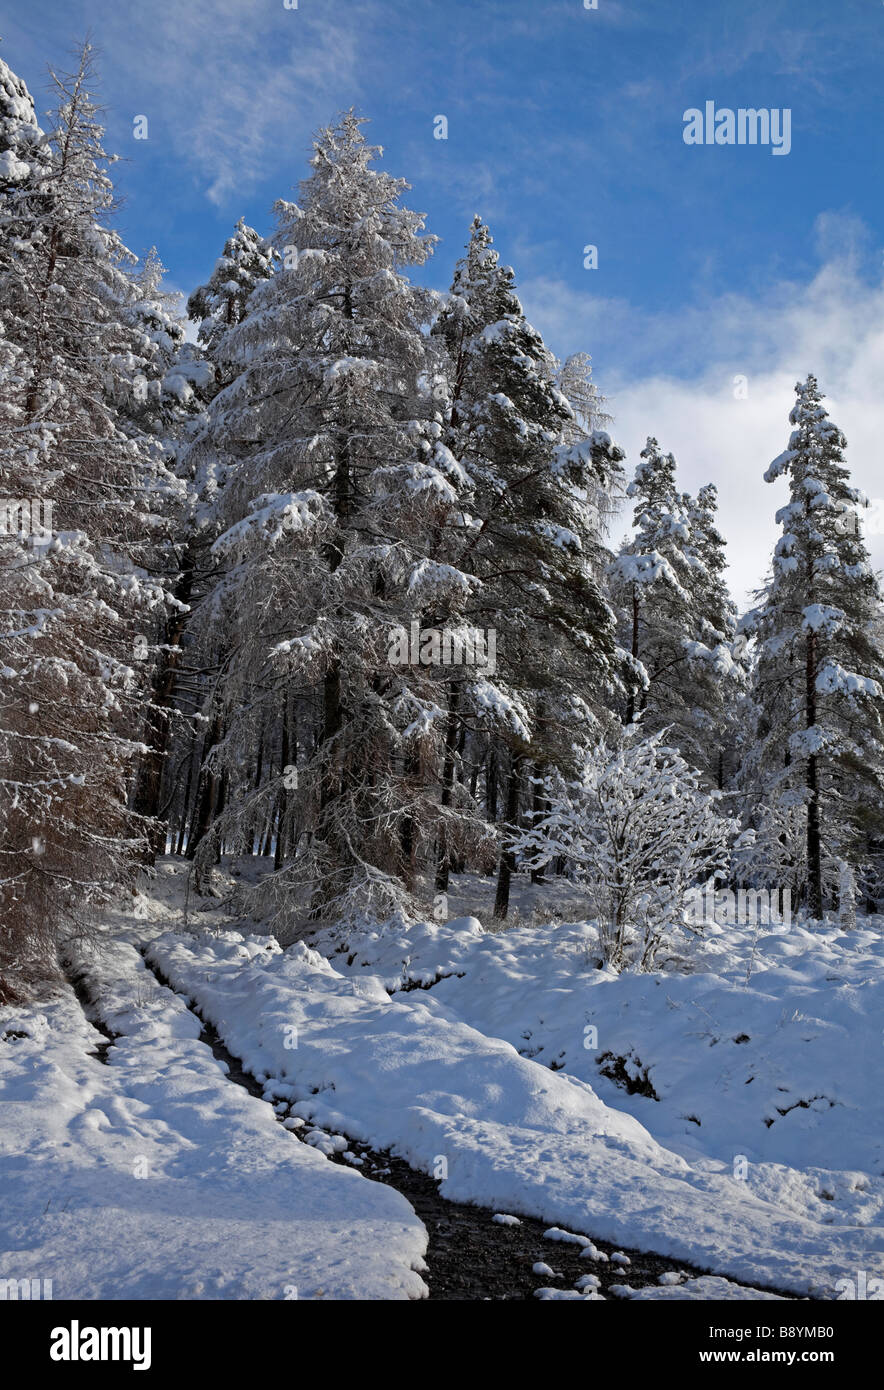 Snow covered conifer trees with a brook running downhill, Breadalbane, Scottish Highlands, Scotland, UK, Europe - Stock Image